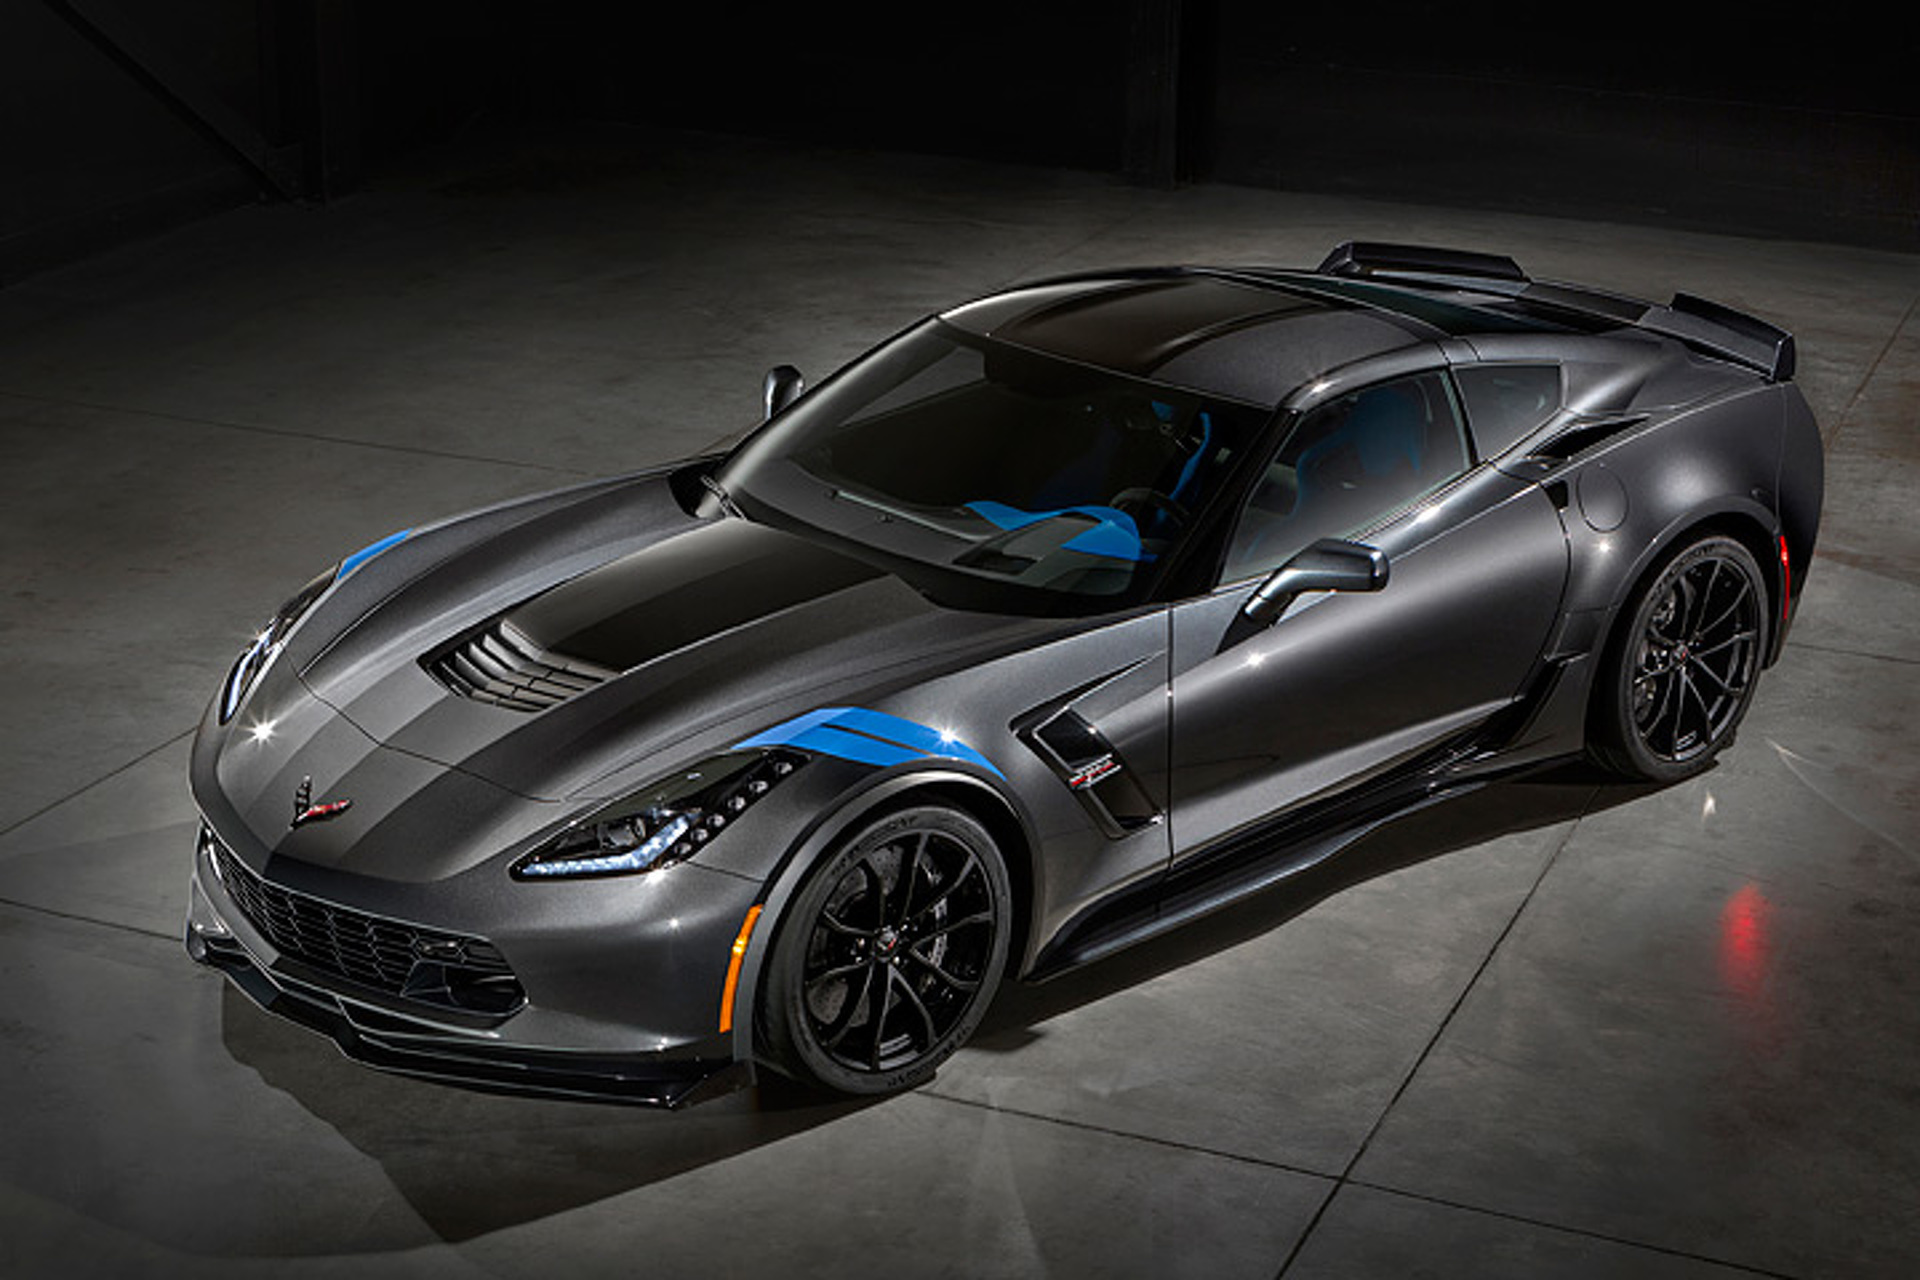 2017 Chevrolet Corvette Grand Sport: 5 Things to Know